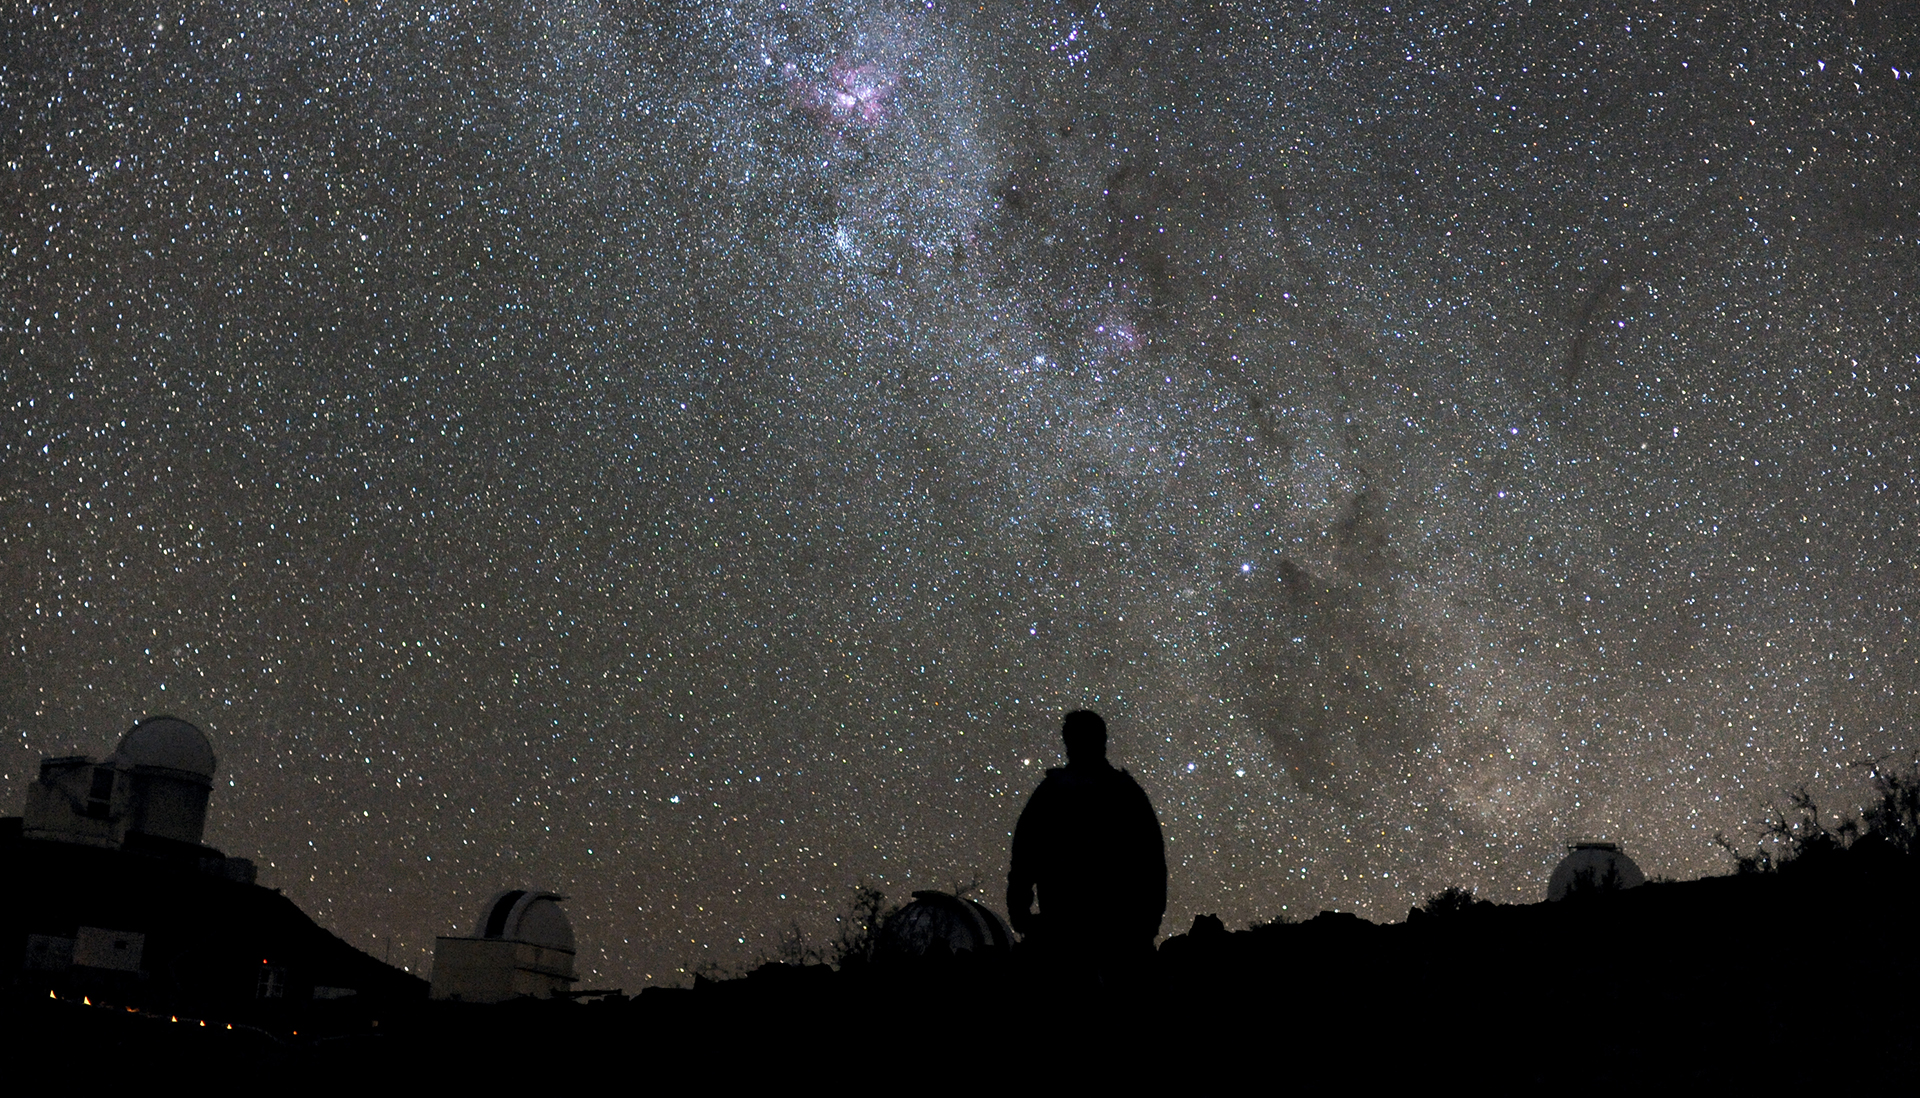 Human Uniqueness in the Cosmos